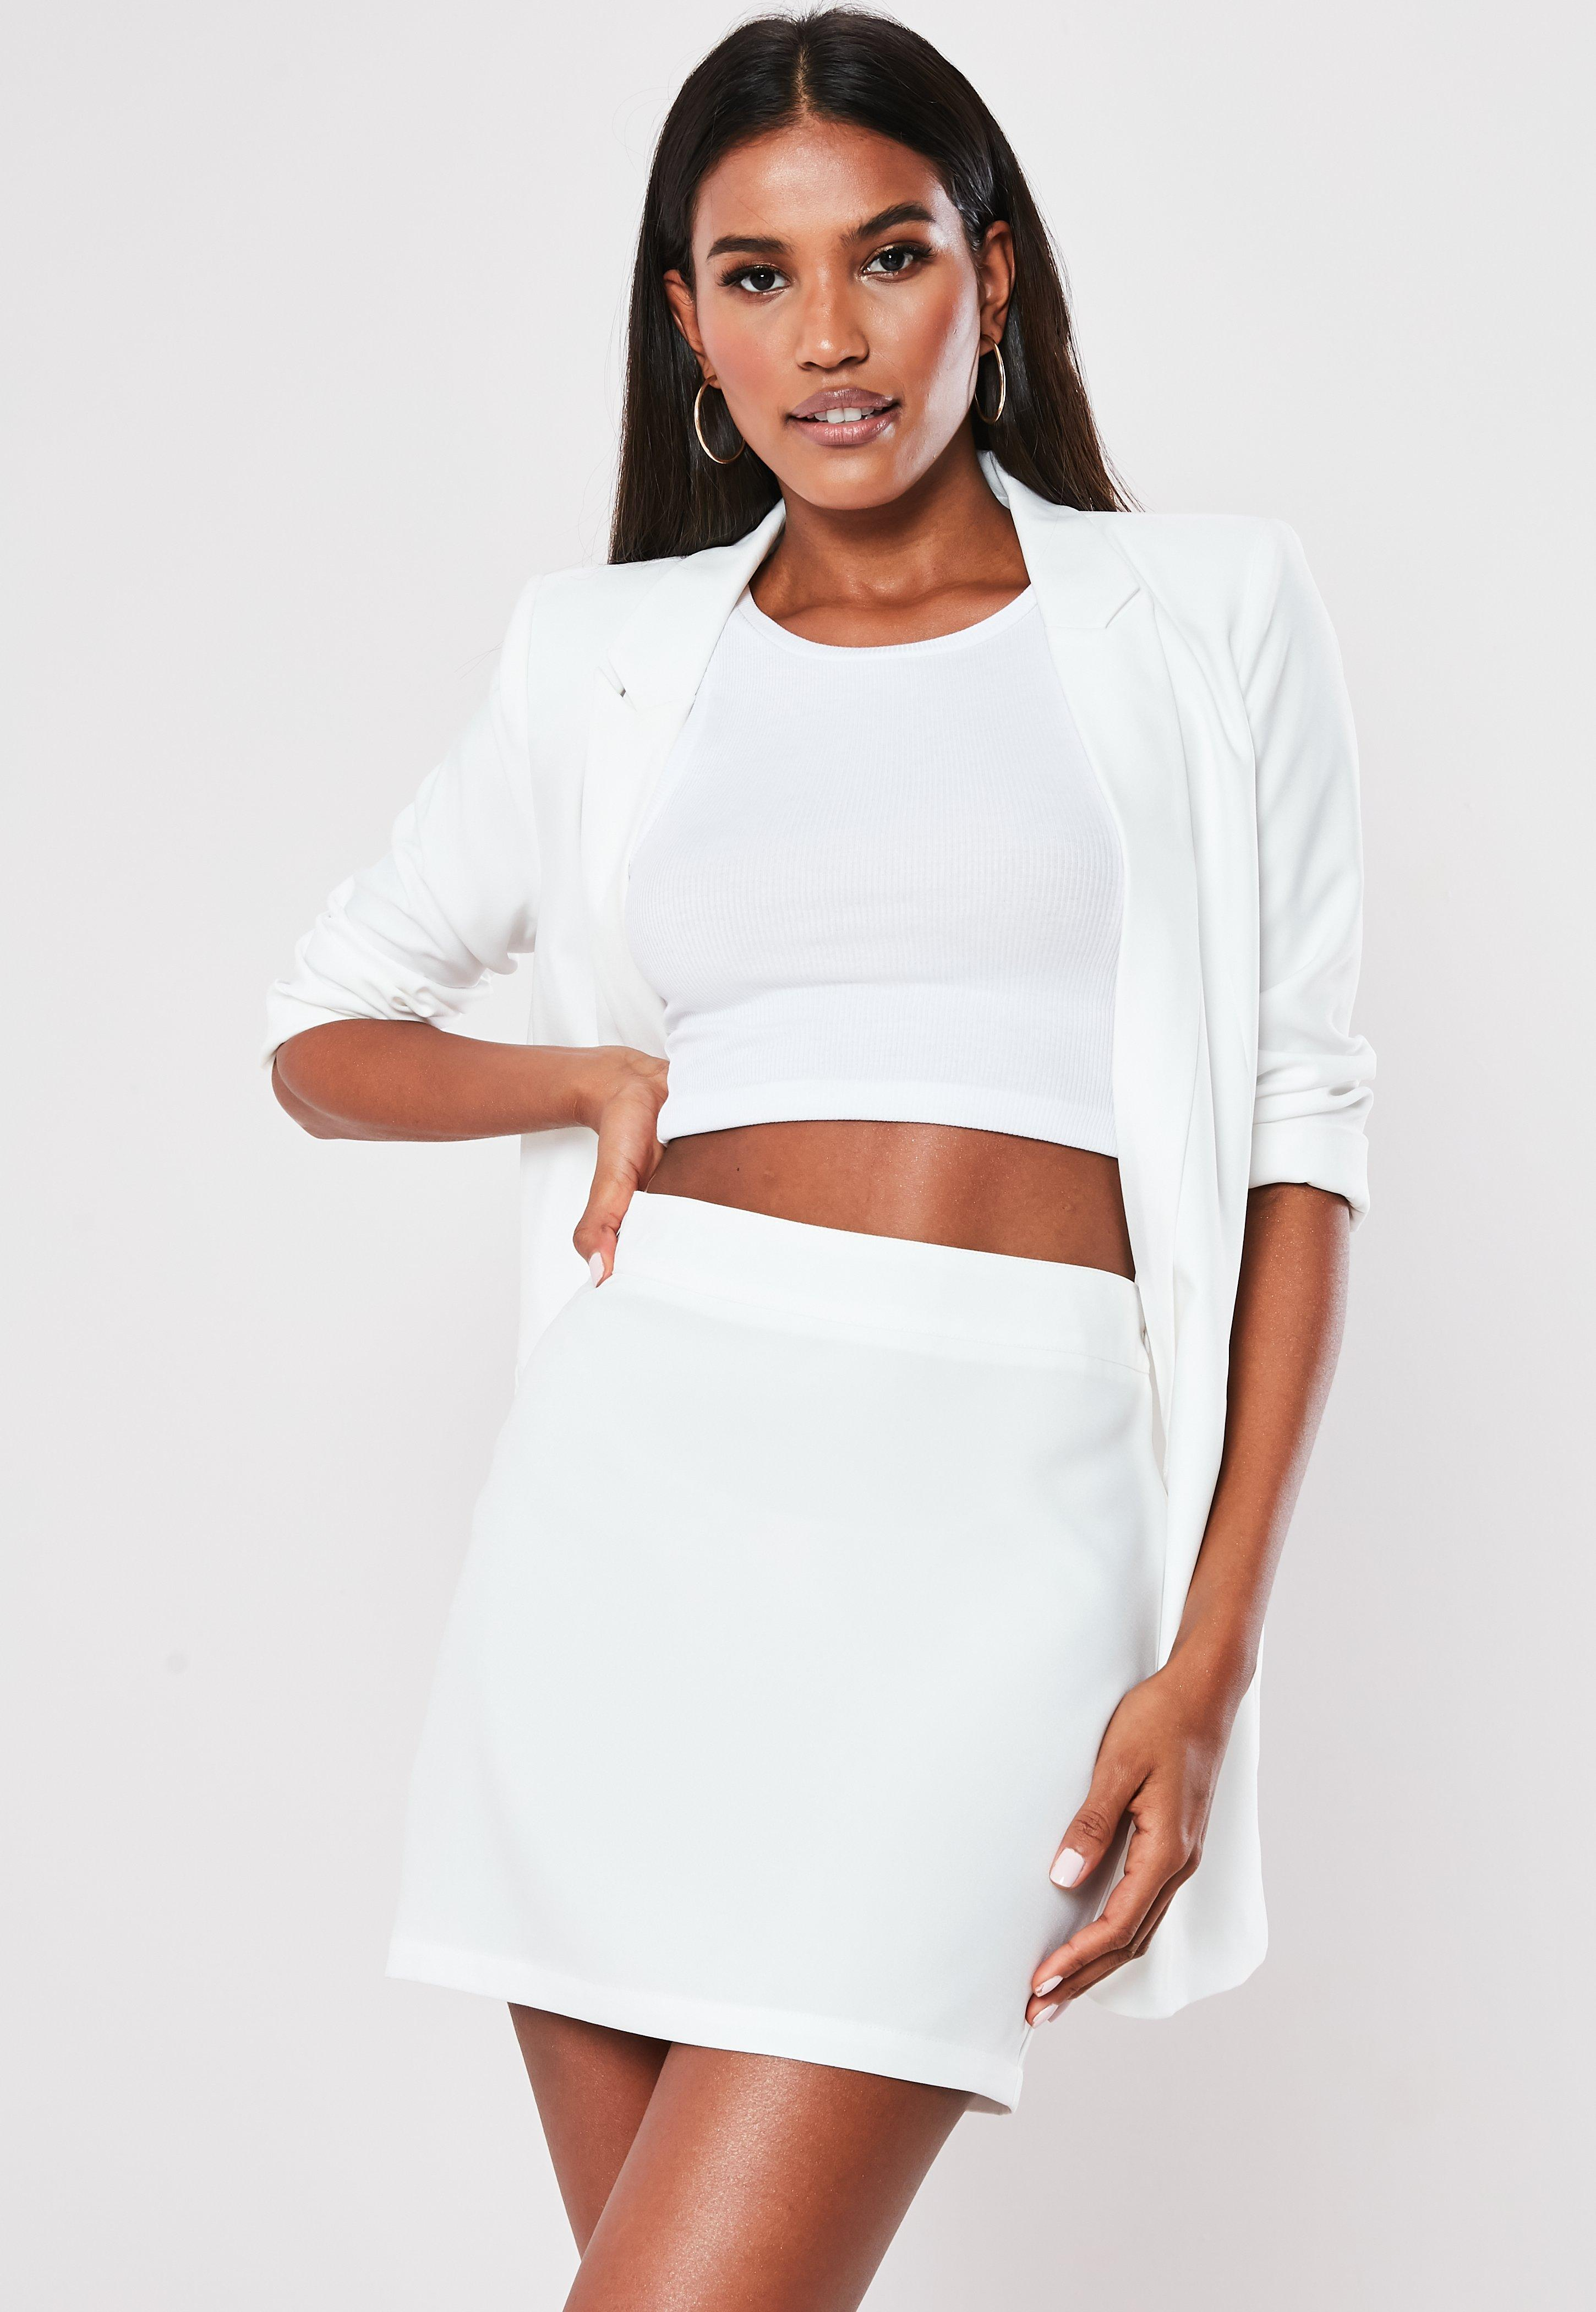 59da2a13d White Skirts | Ivory & White Skirts Online - Missguided